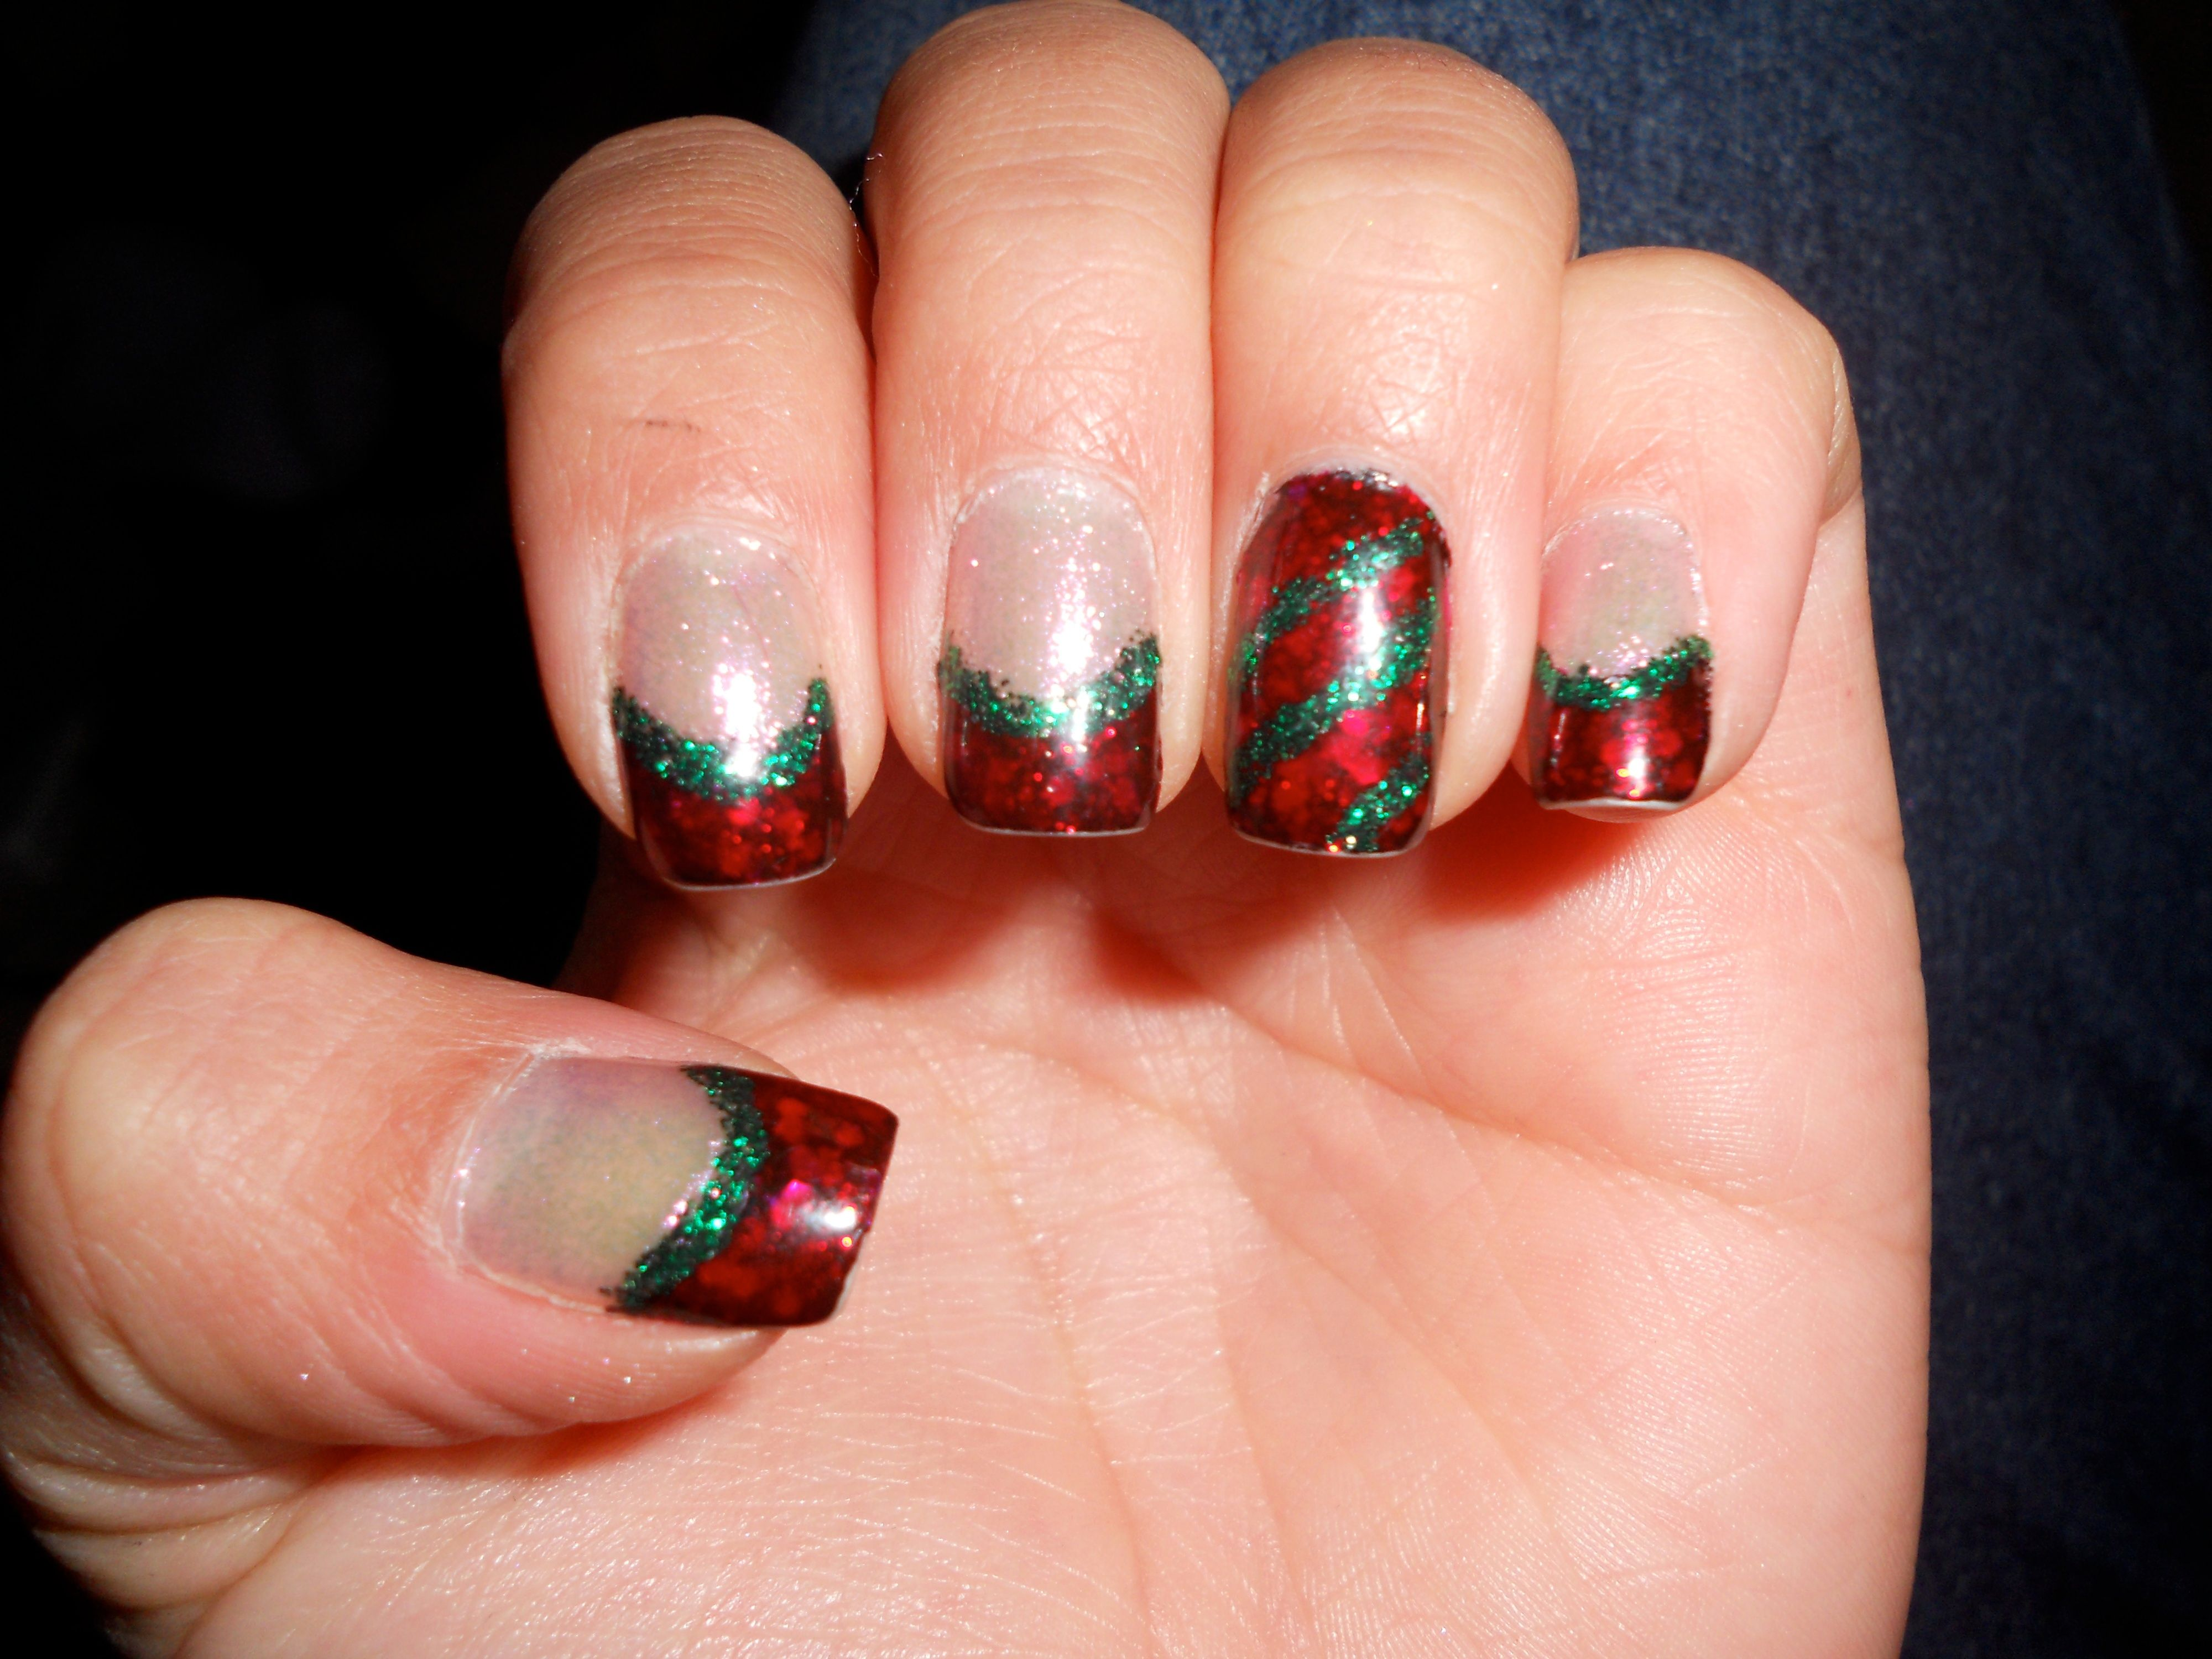 Red and green French tip Christmas nails | My nail art | Pinterest ...